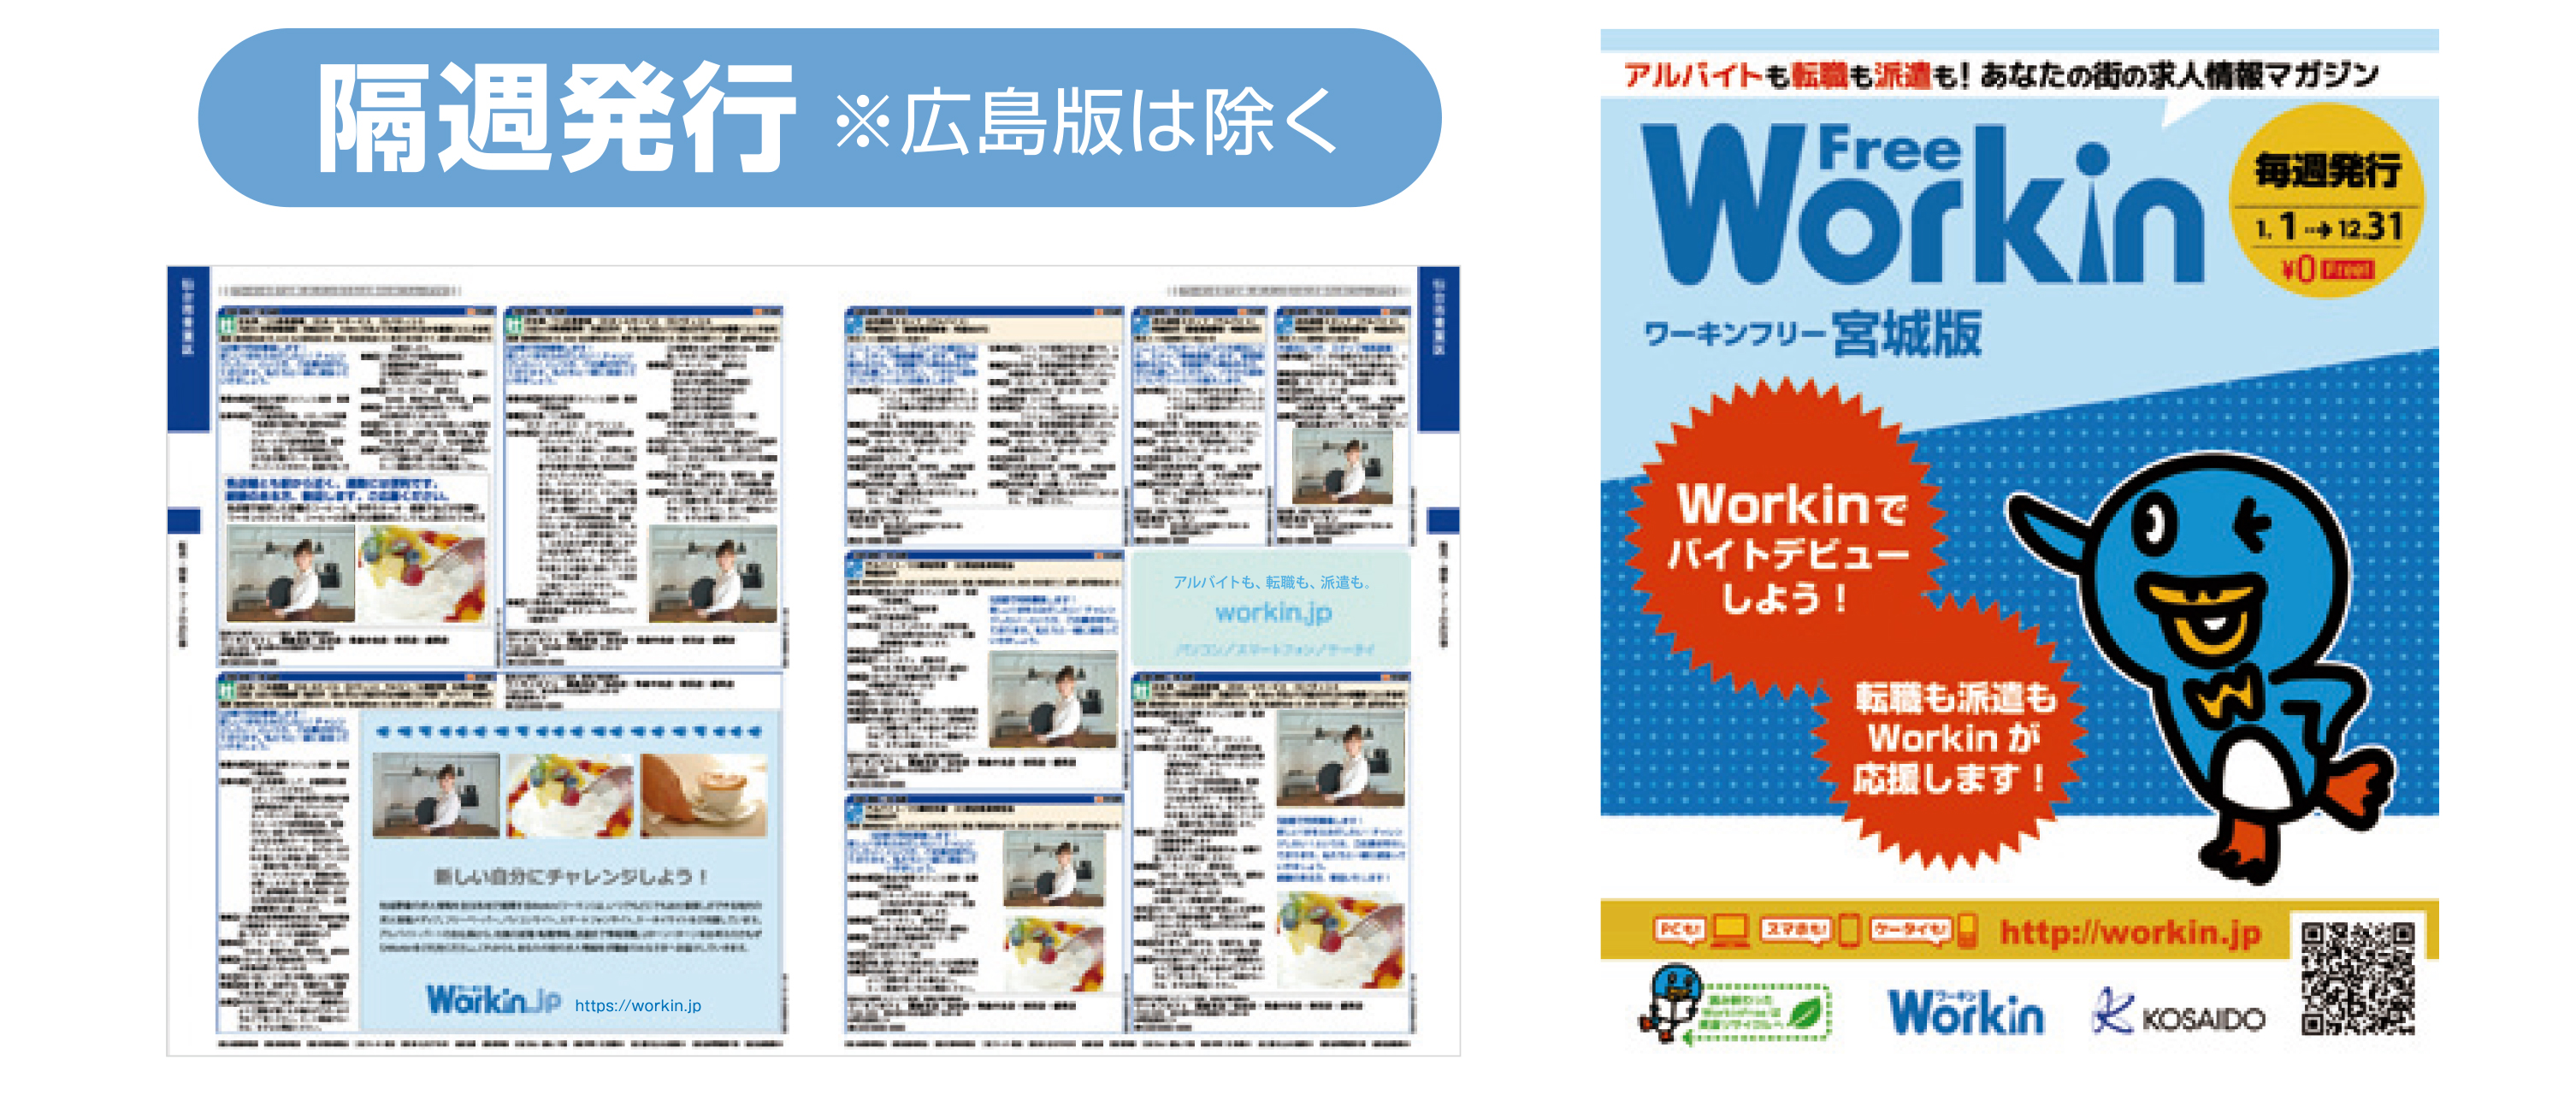 workinjp_option2i